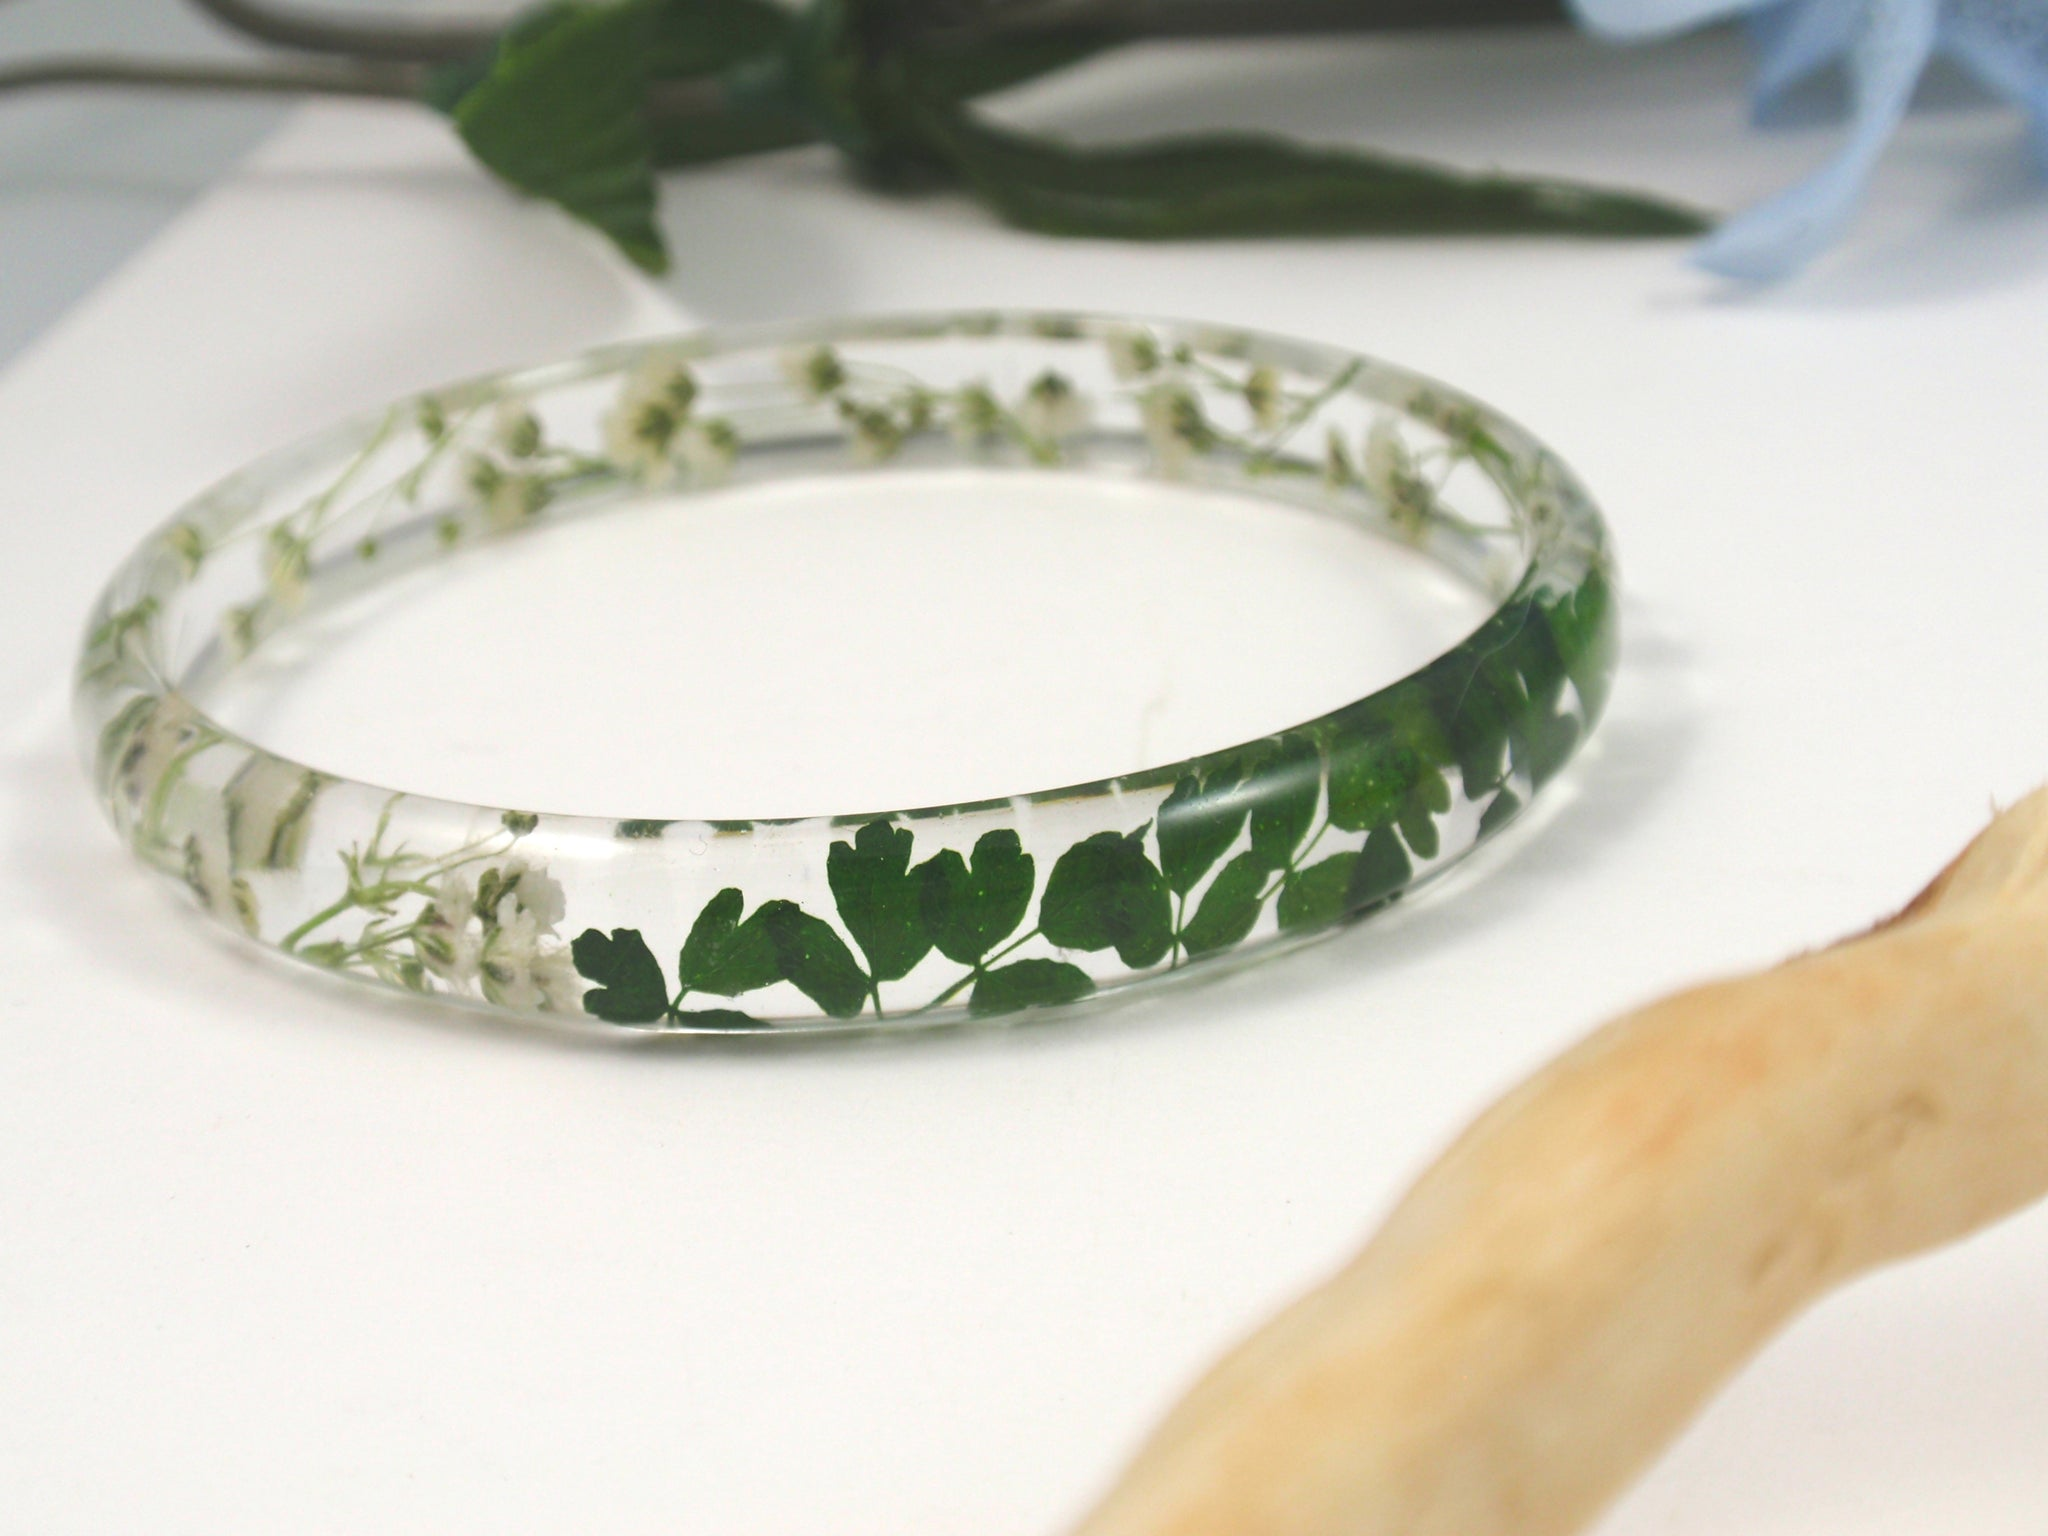 Botanical Bracelet, Resin Bangle Bracelet, Real Flower Resin Jewelry